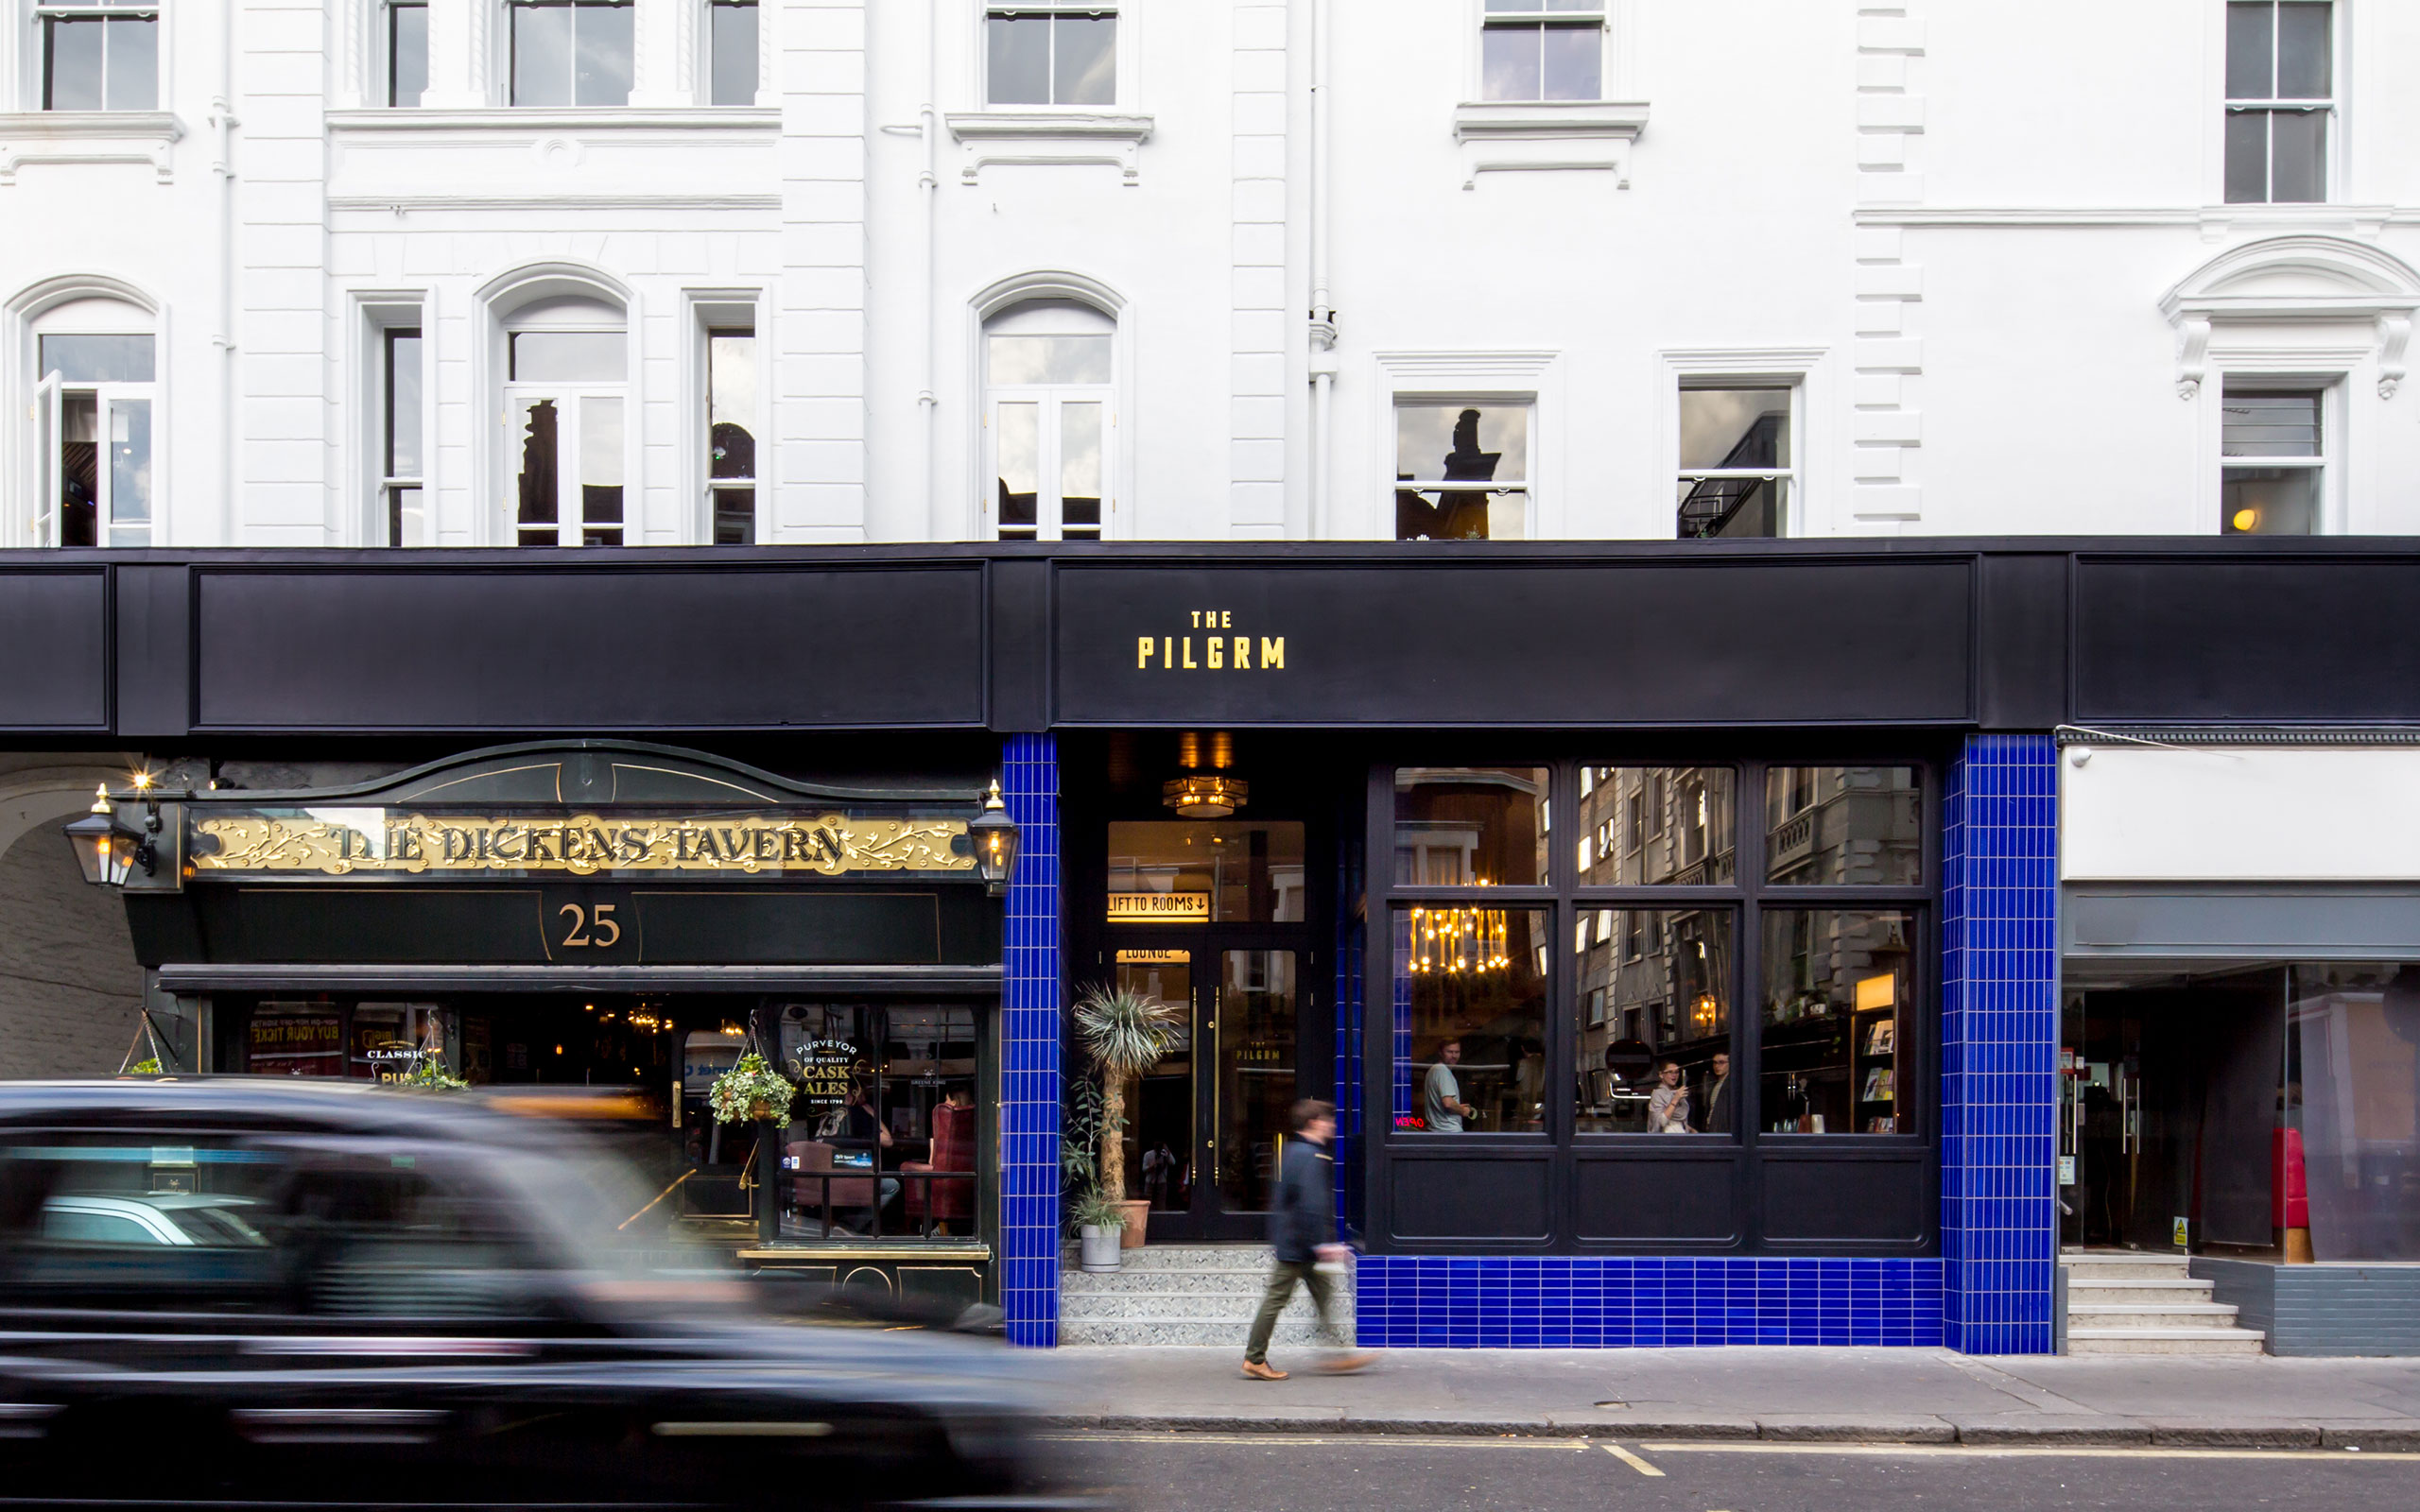 Travel guide: London's Must-stay Hotels